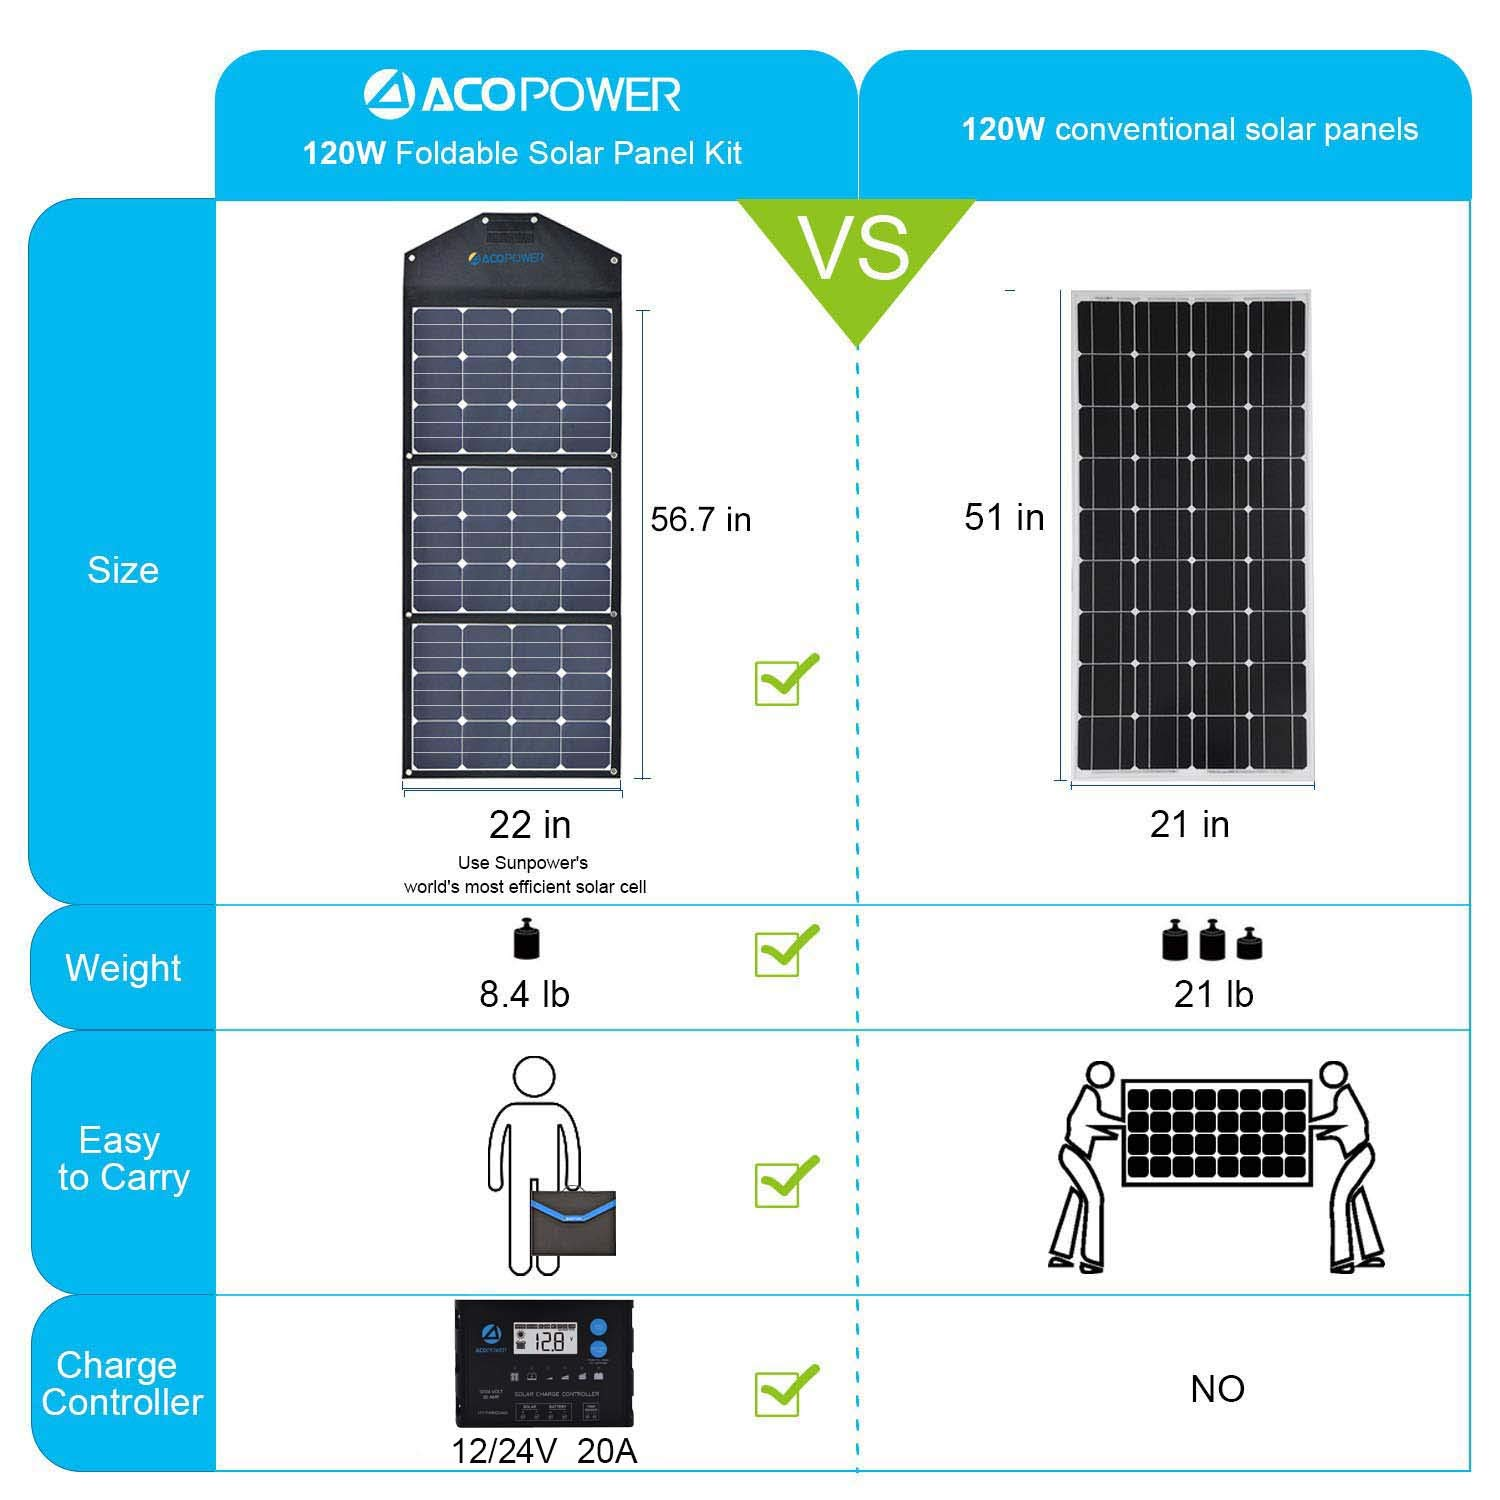 ACOPOWER 120W Portable Solar Panel, 12V Foldable Solar Charger with ProteusX 20A Charge Controller in Suitcase